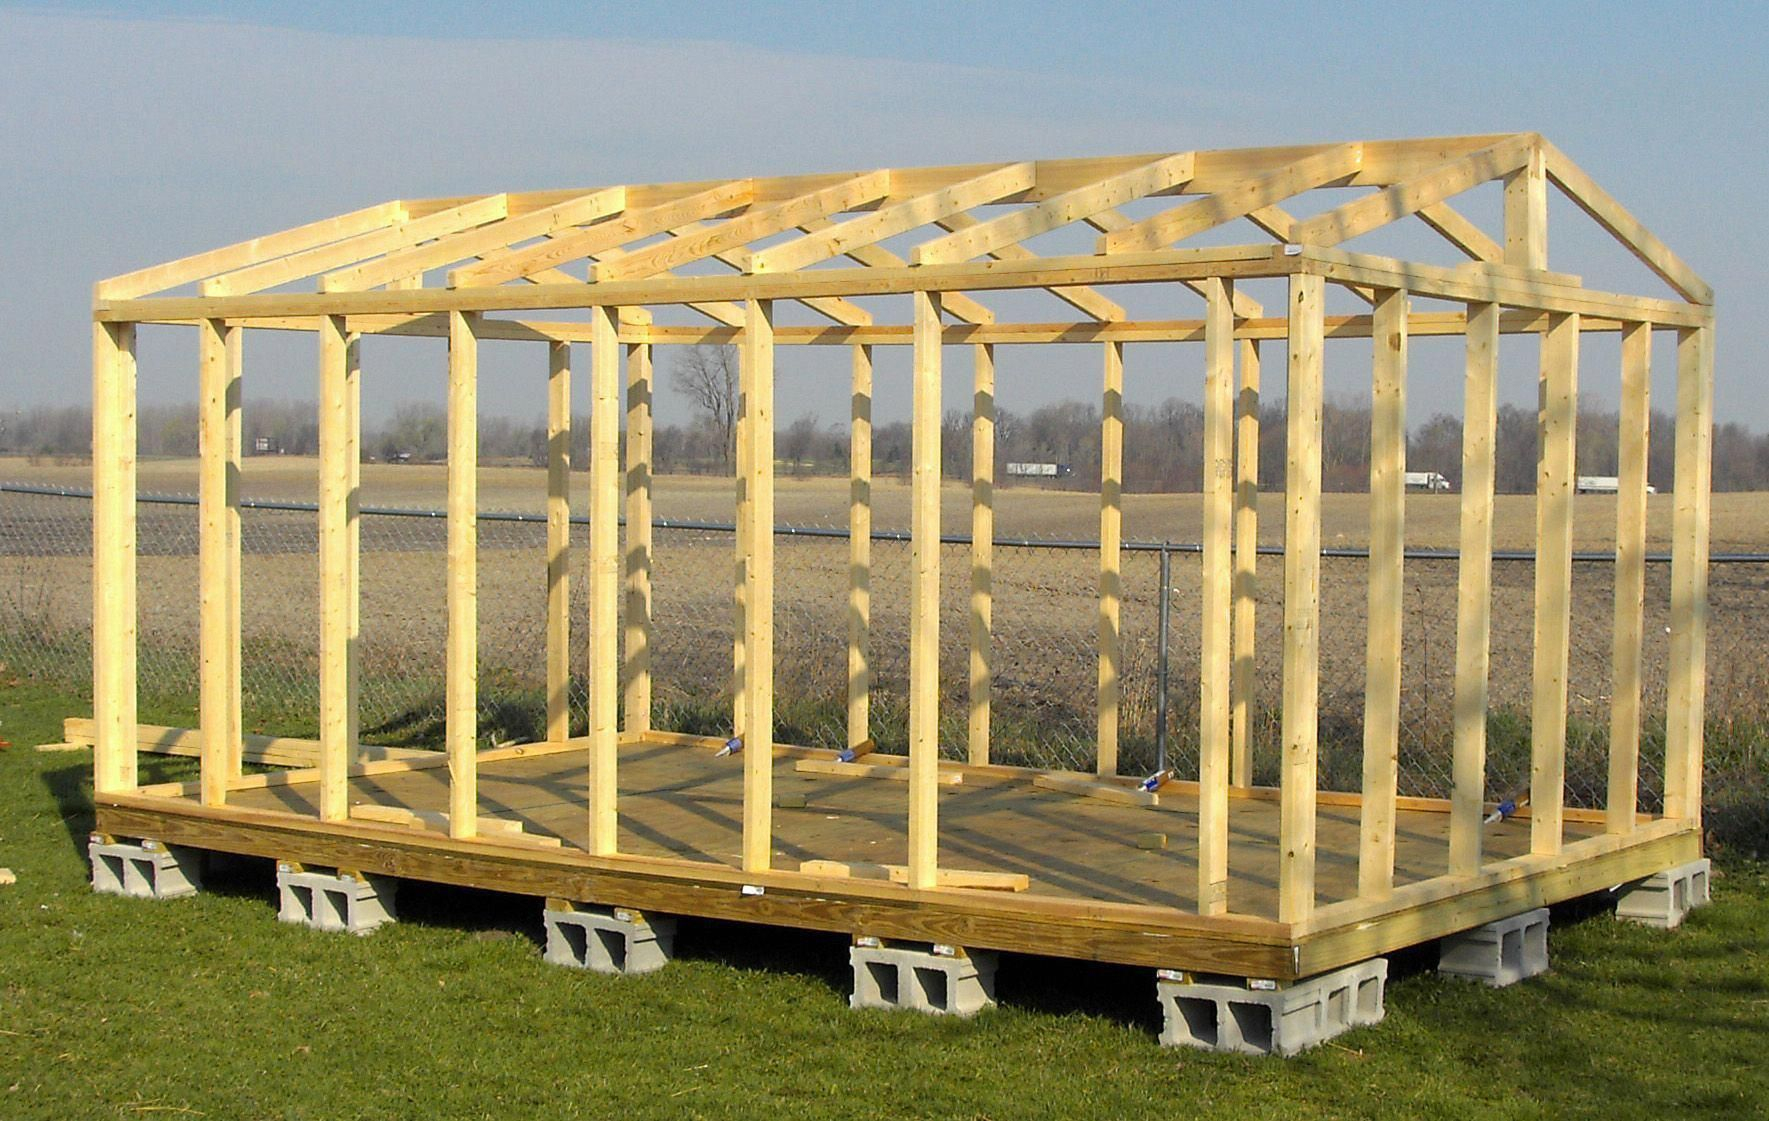 16X20 Shed Plans | All Wall And Roof Framing Is From Solid ... concernant Abri De Jardin 2X3